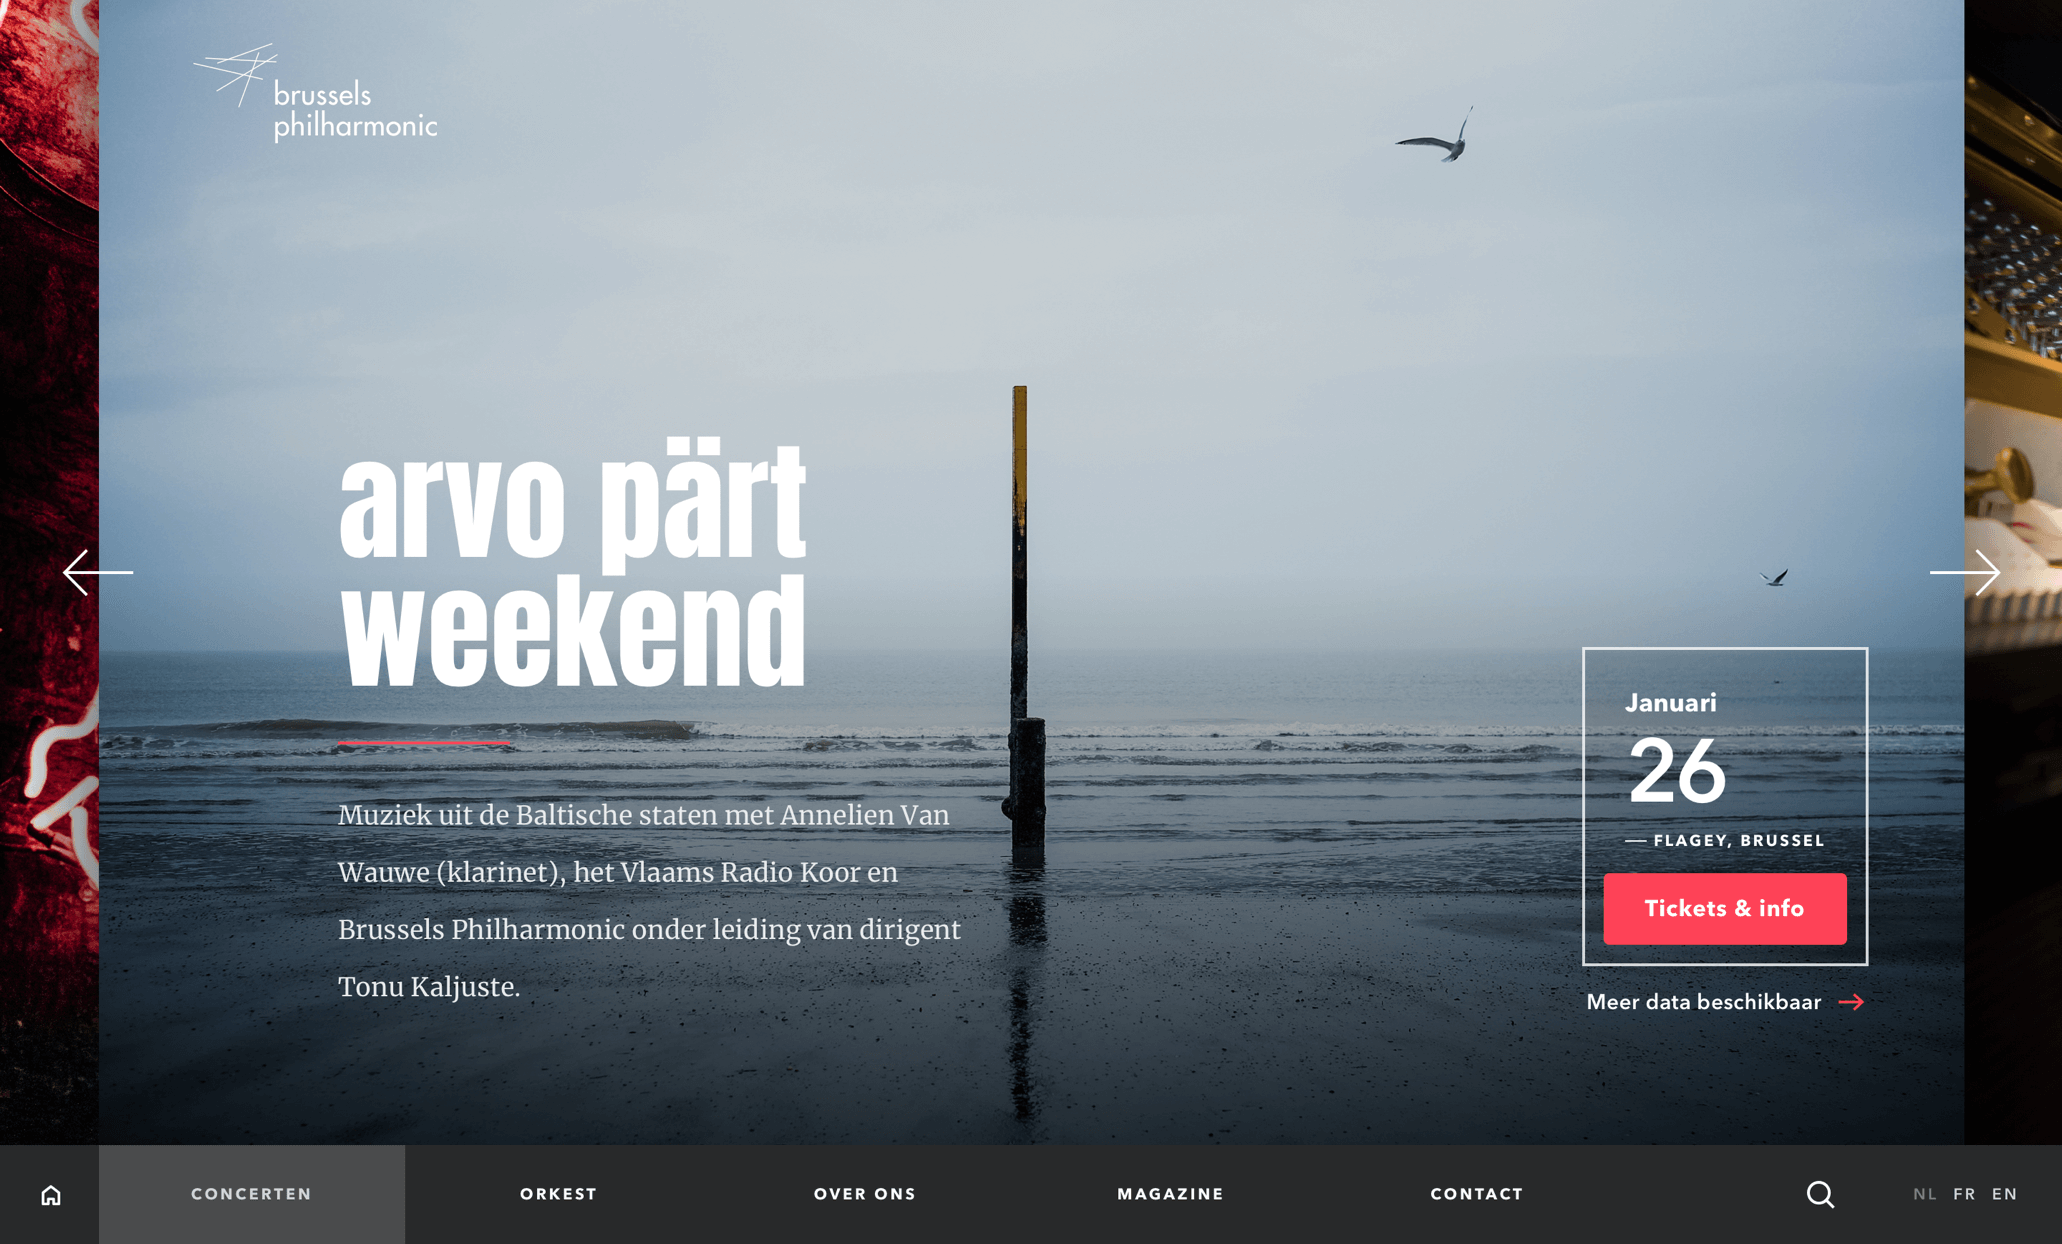 Brussels philharmonic new homepage design